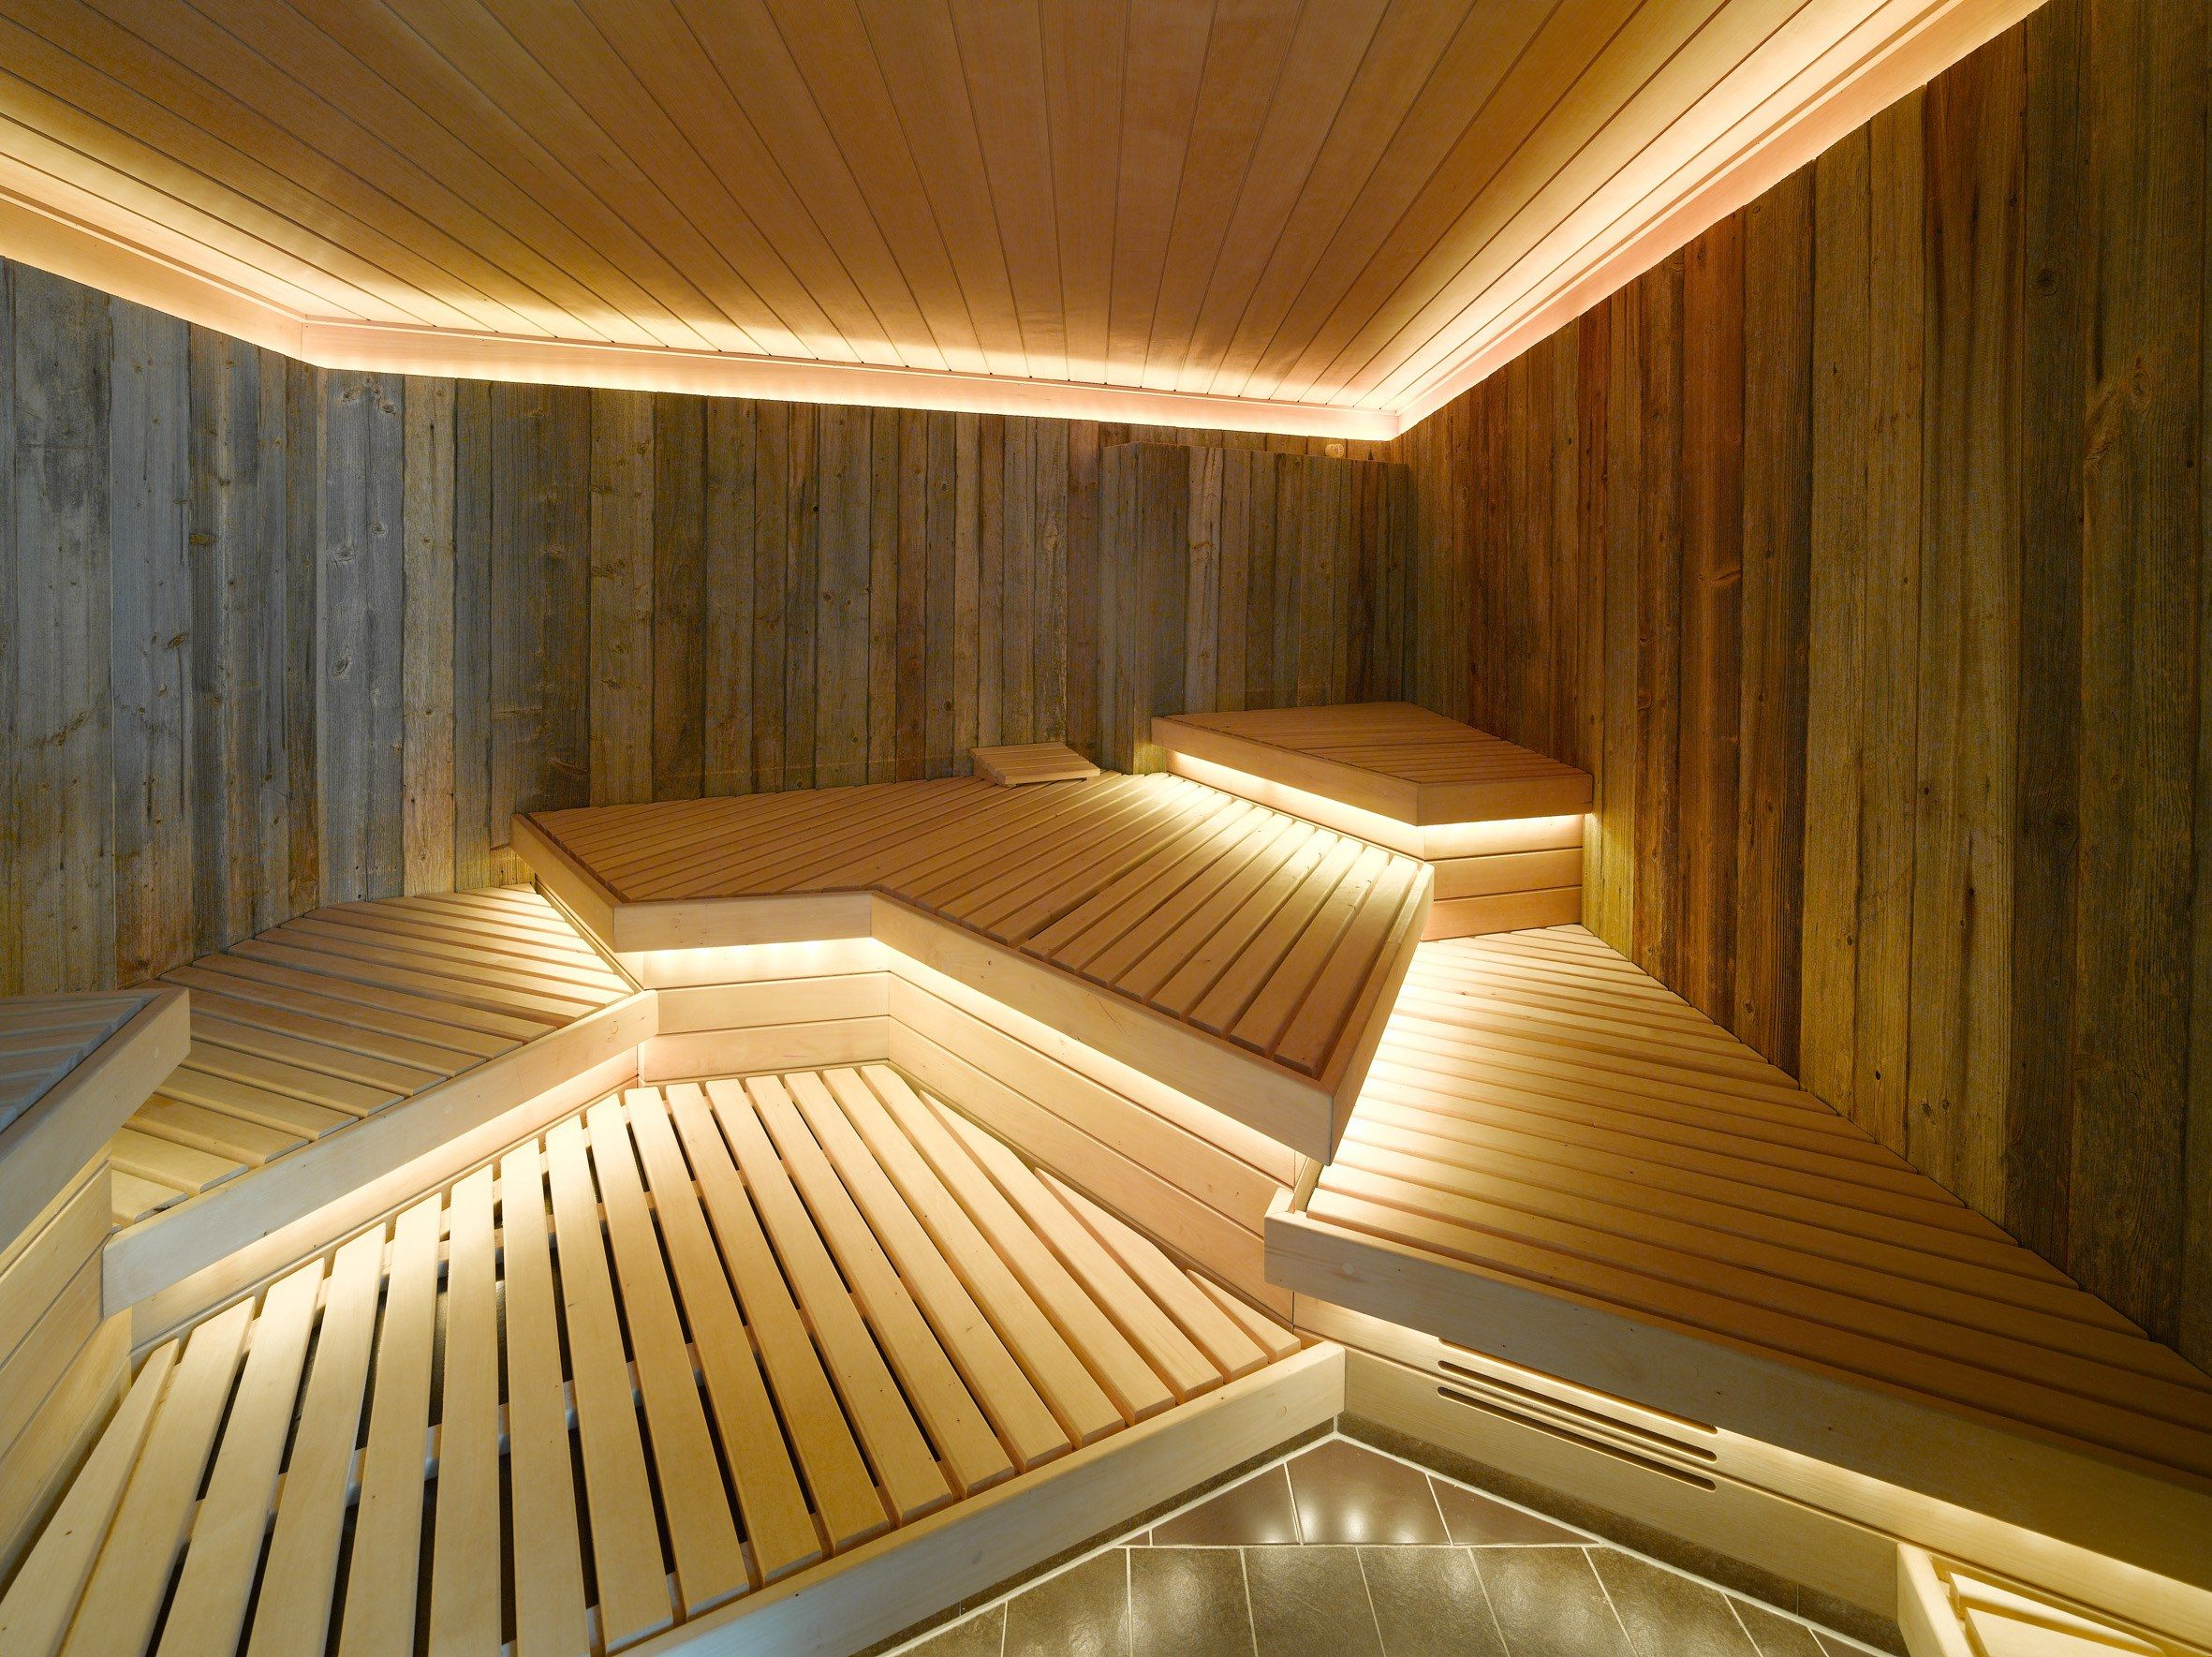 spa visit need architecturally saunas to next design you pin designspa stunning interior